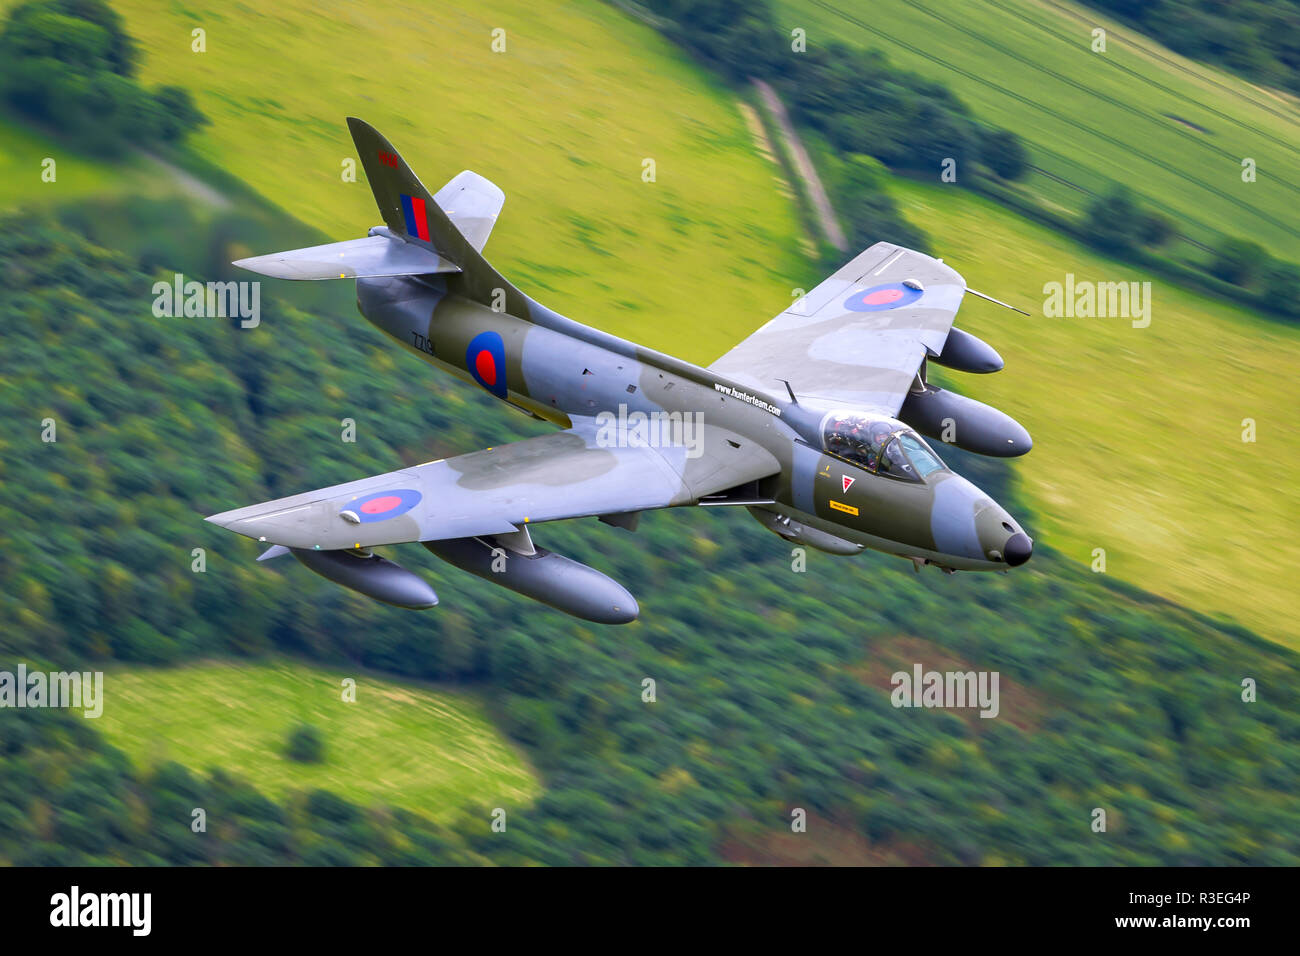 The Hawker Hunter is a transonic British jet-powered fighter aircraft that was developed by Hawker Aircraft for the Royal Air Force (RAF) during the l - Stock Image